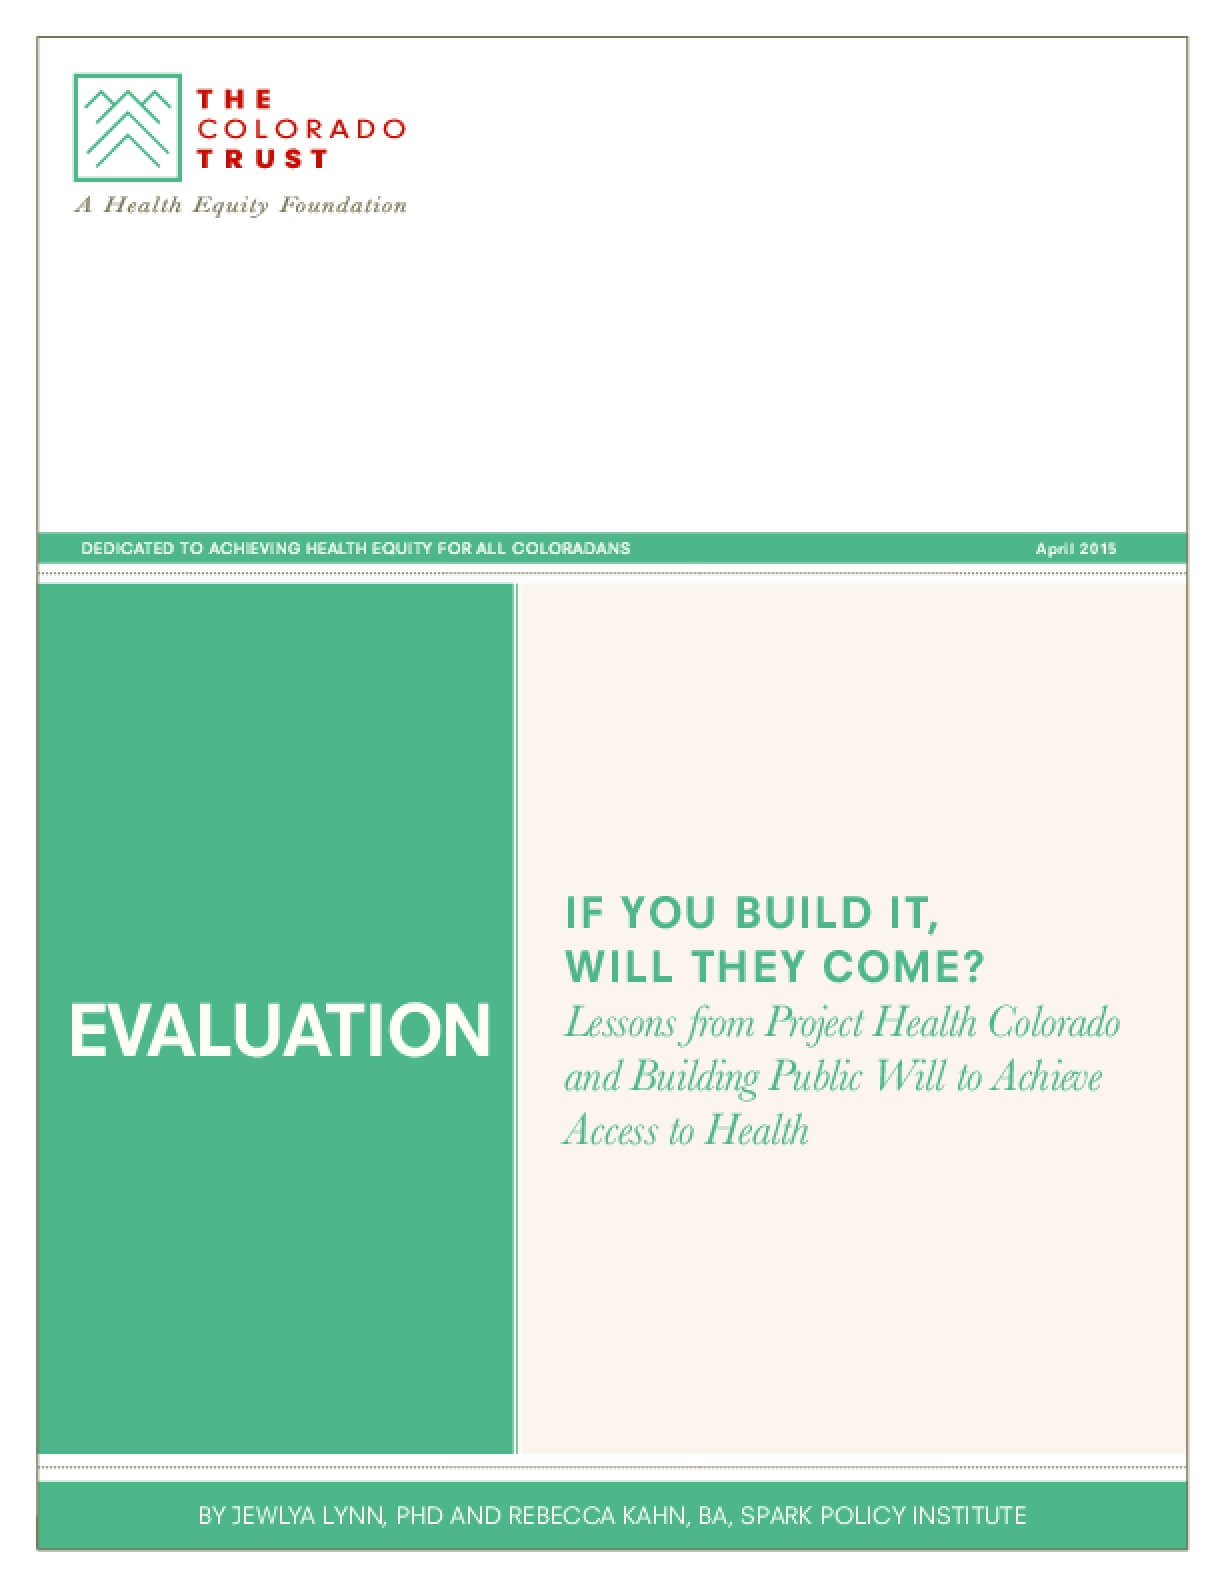 If You Build It Will They Come? Lessons from Project Health Colorado and Building Public Will to Achieve Access to Health